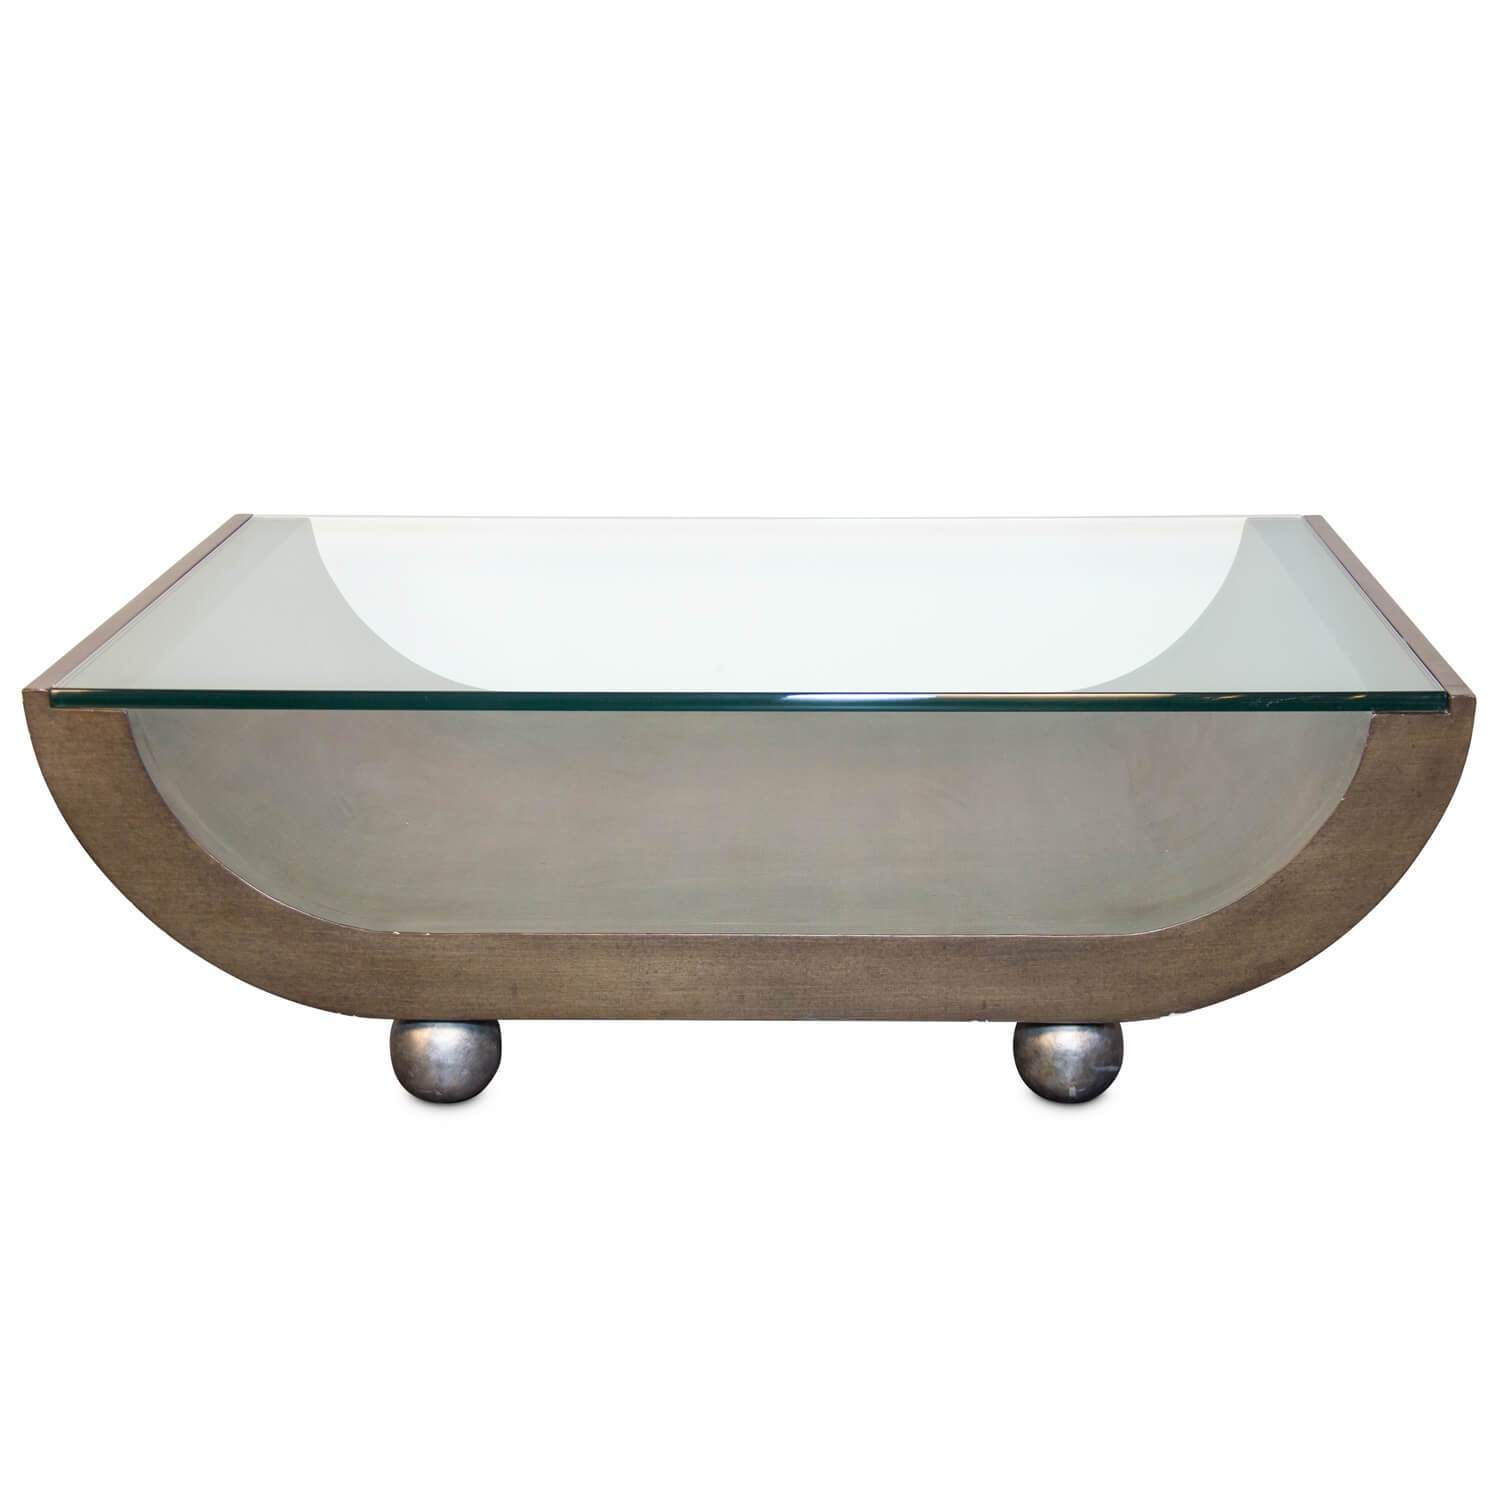 Benzara Clear Glass Coffee Table Lowes Com Round Coffee Table Living Room Coffee Table Round Wood Coffee Table [ 900 x 900 Pixel ]